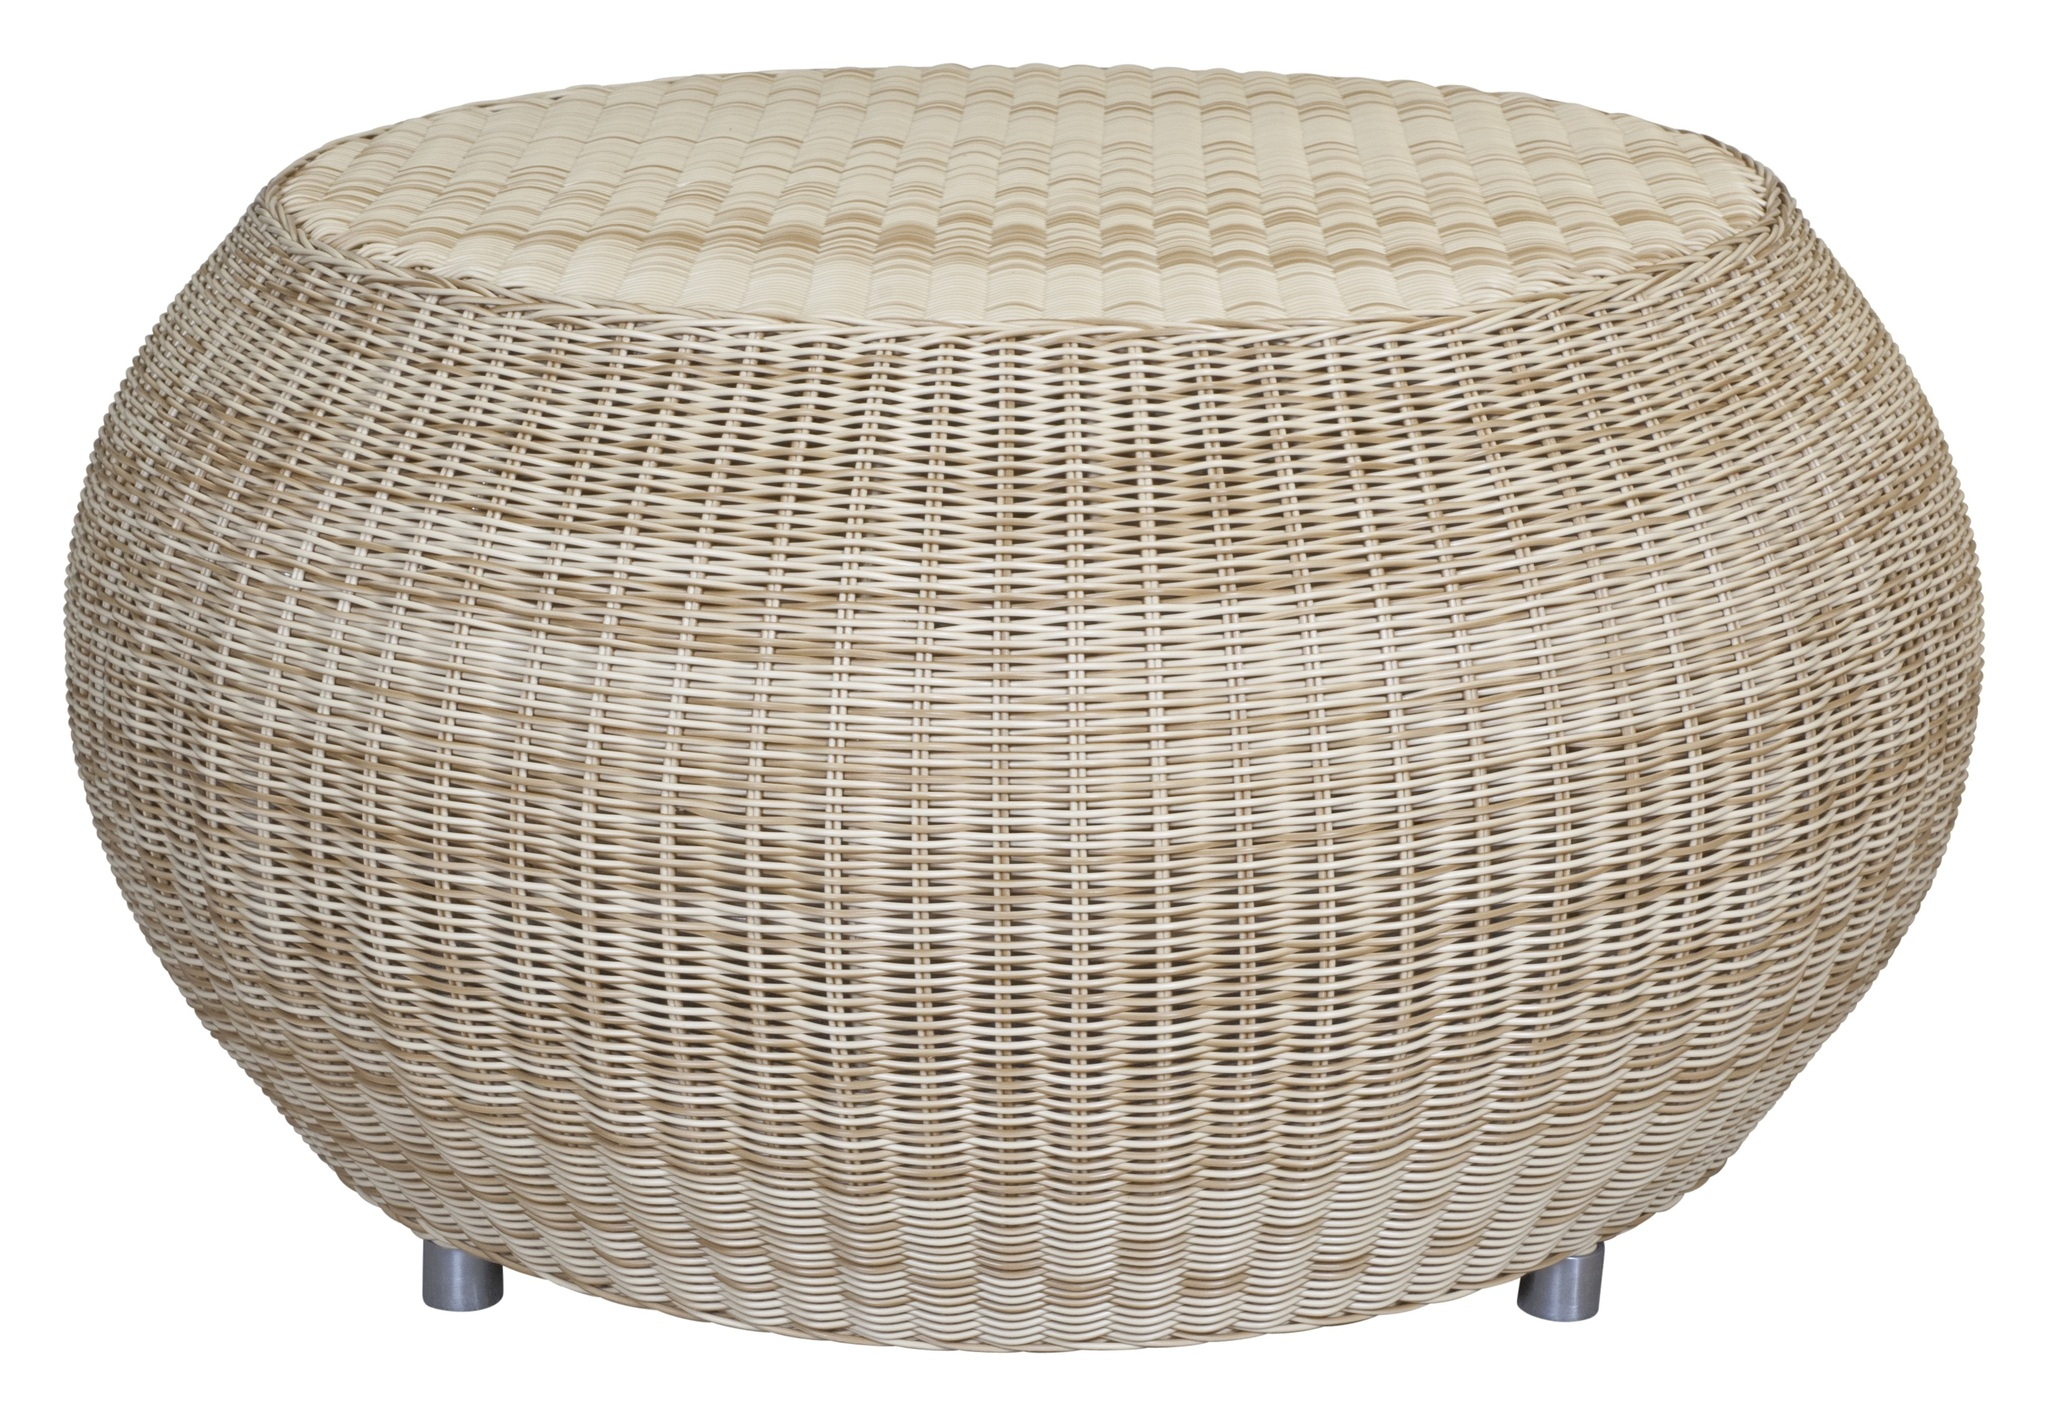 Outdoor Pouf Coffee Table Outdoor Mainly Baskets Home